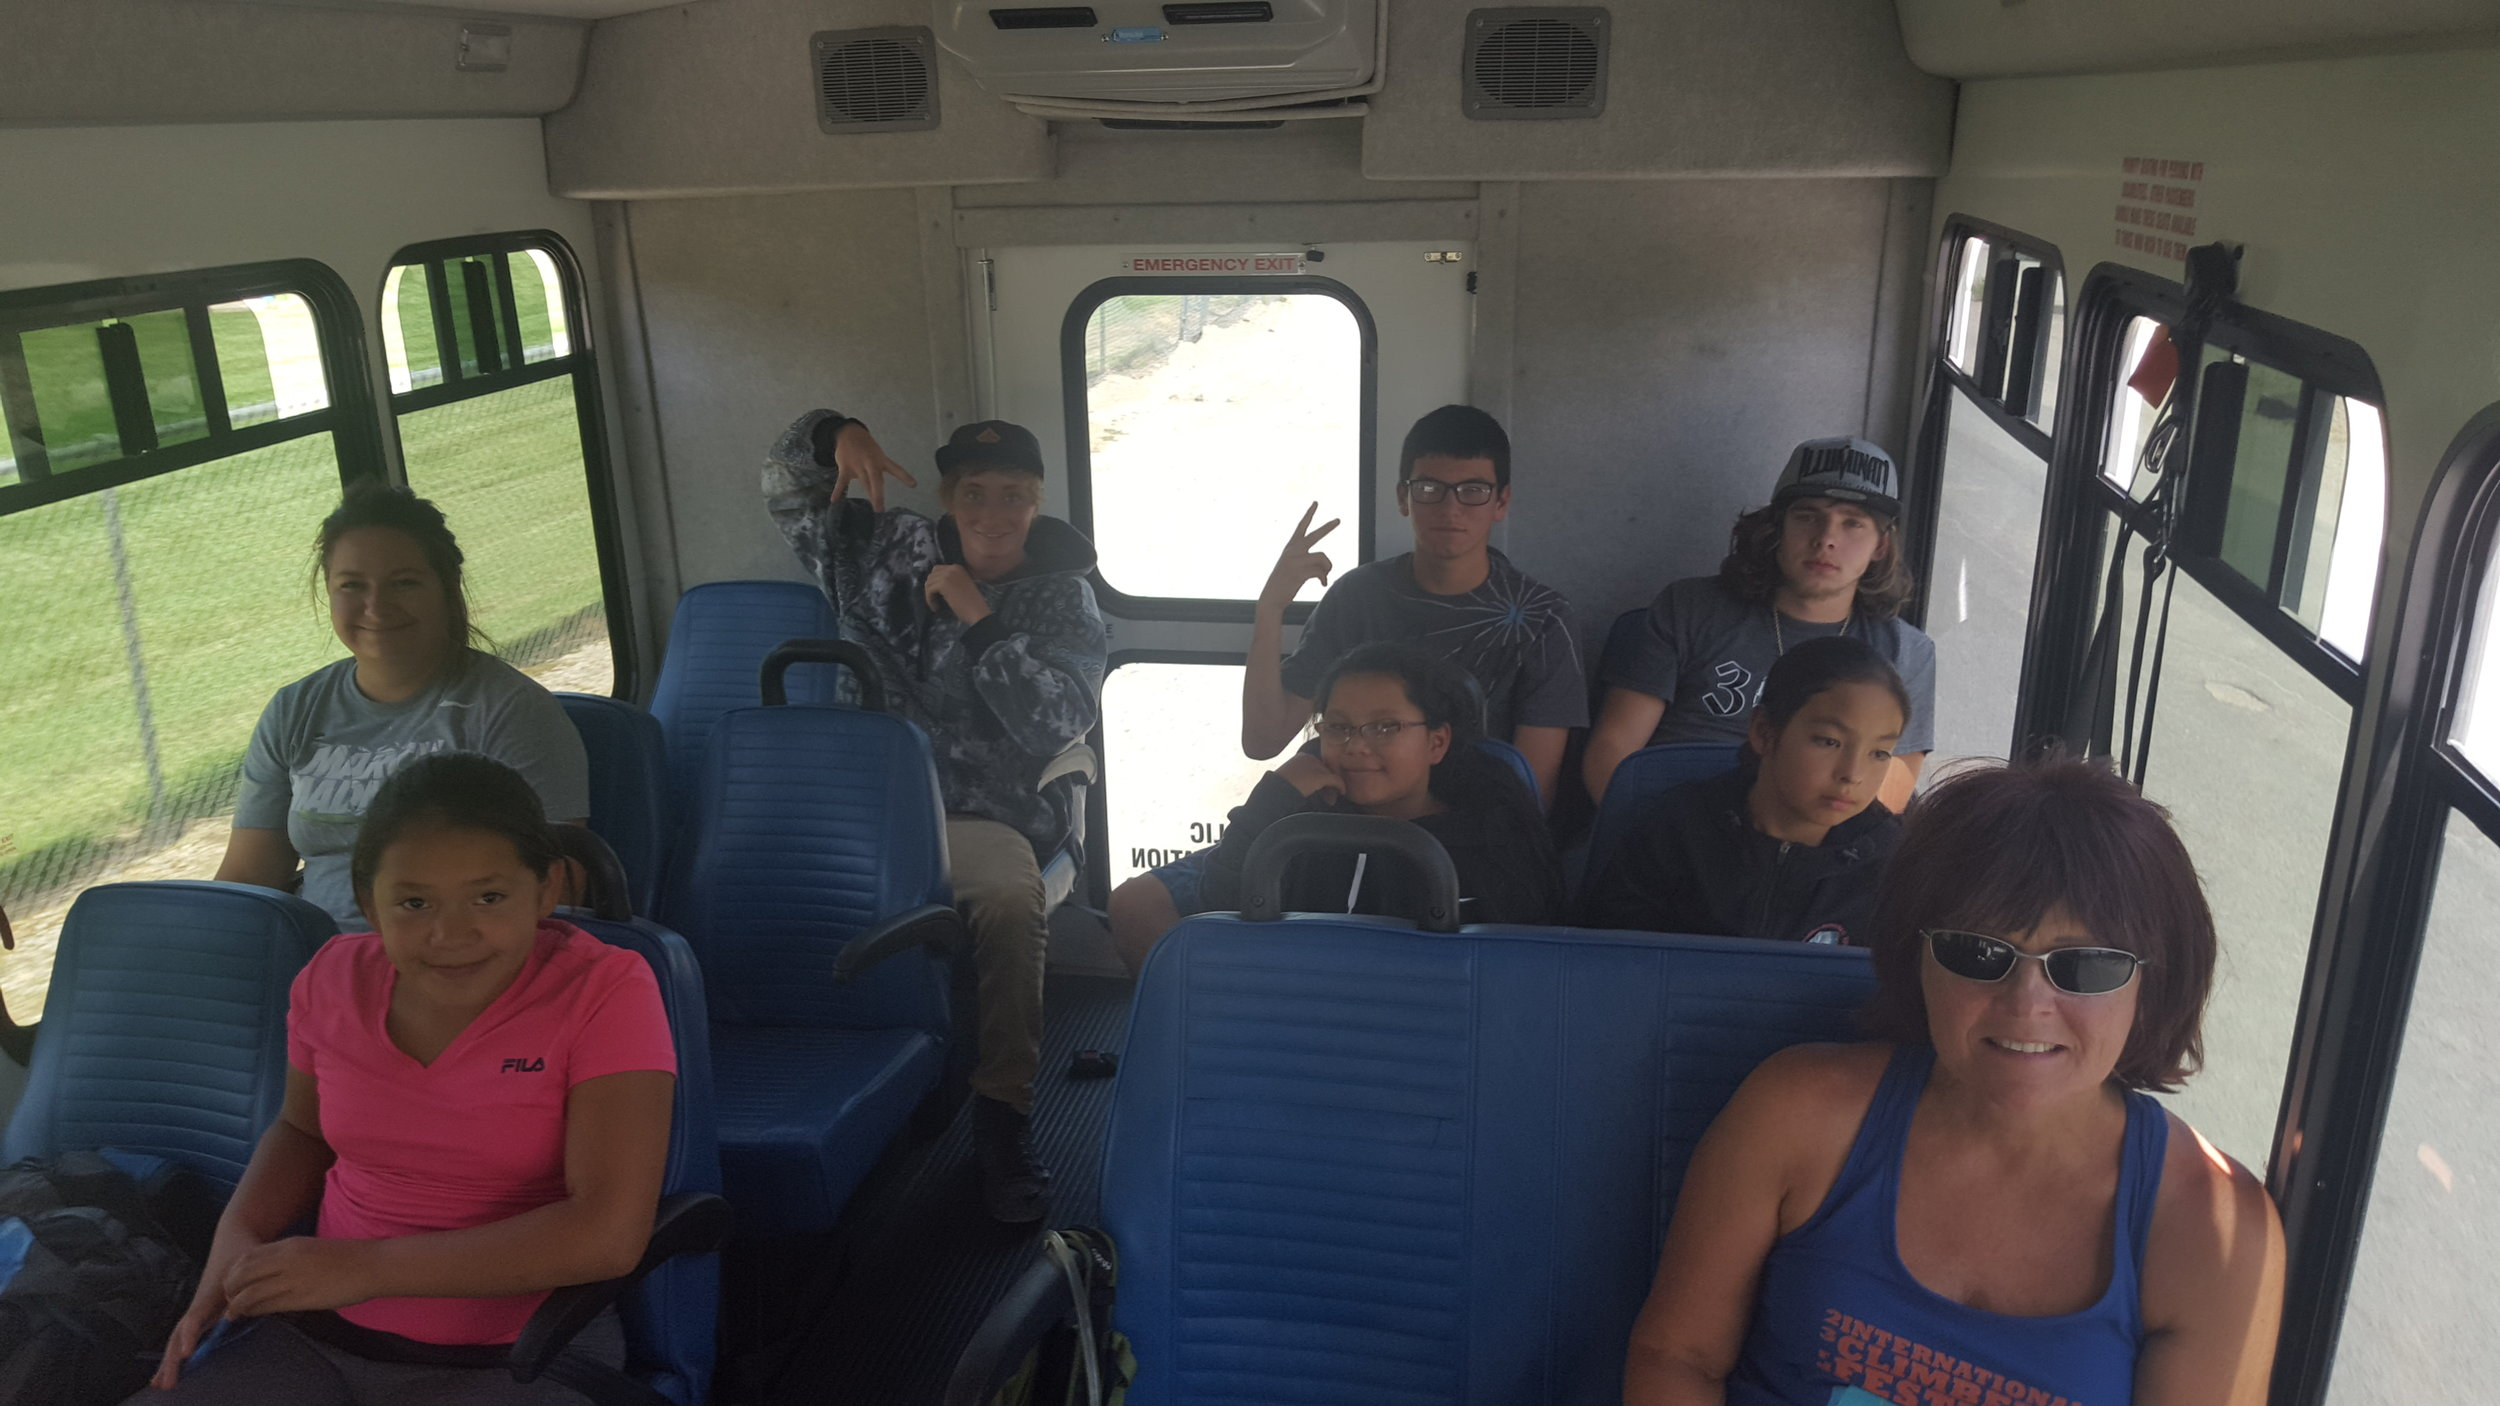 Photo: Emily Weldon. Lander, Riverton, and Wind River Indian Reservation youth on their way to their first climbing experience during the International Climbers Festival in 2016.